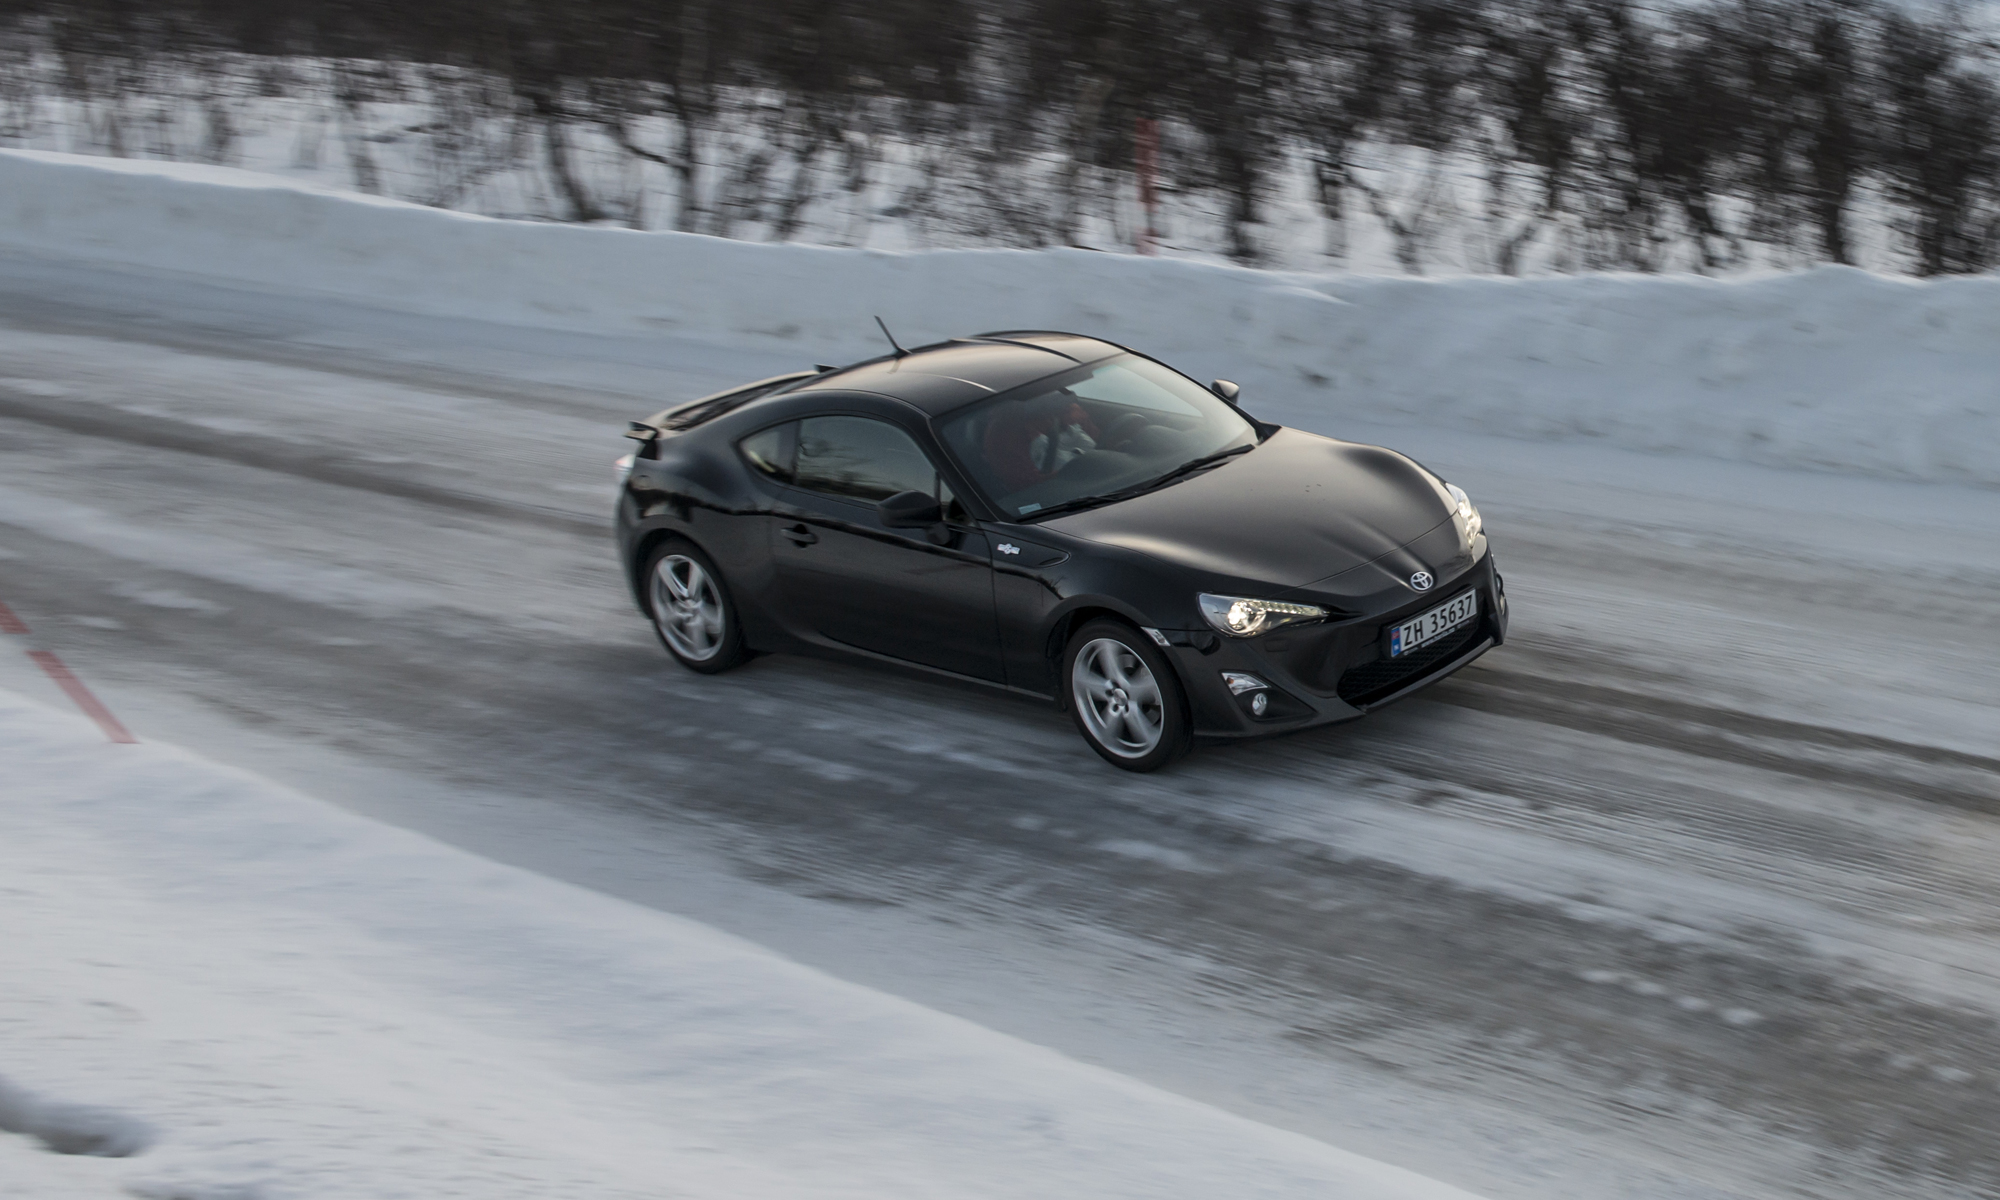 Toyota GT86 action